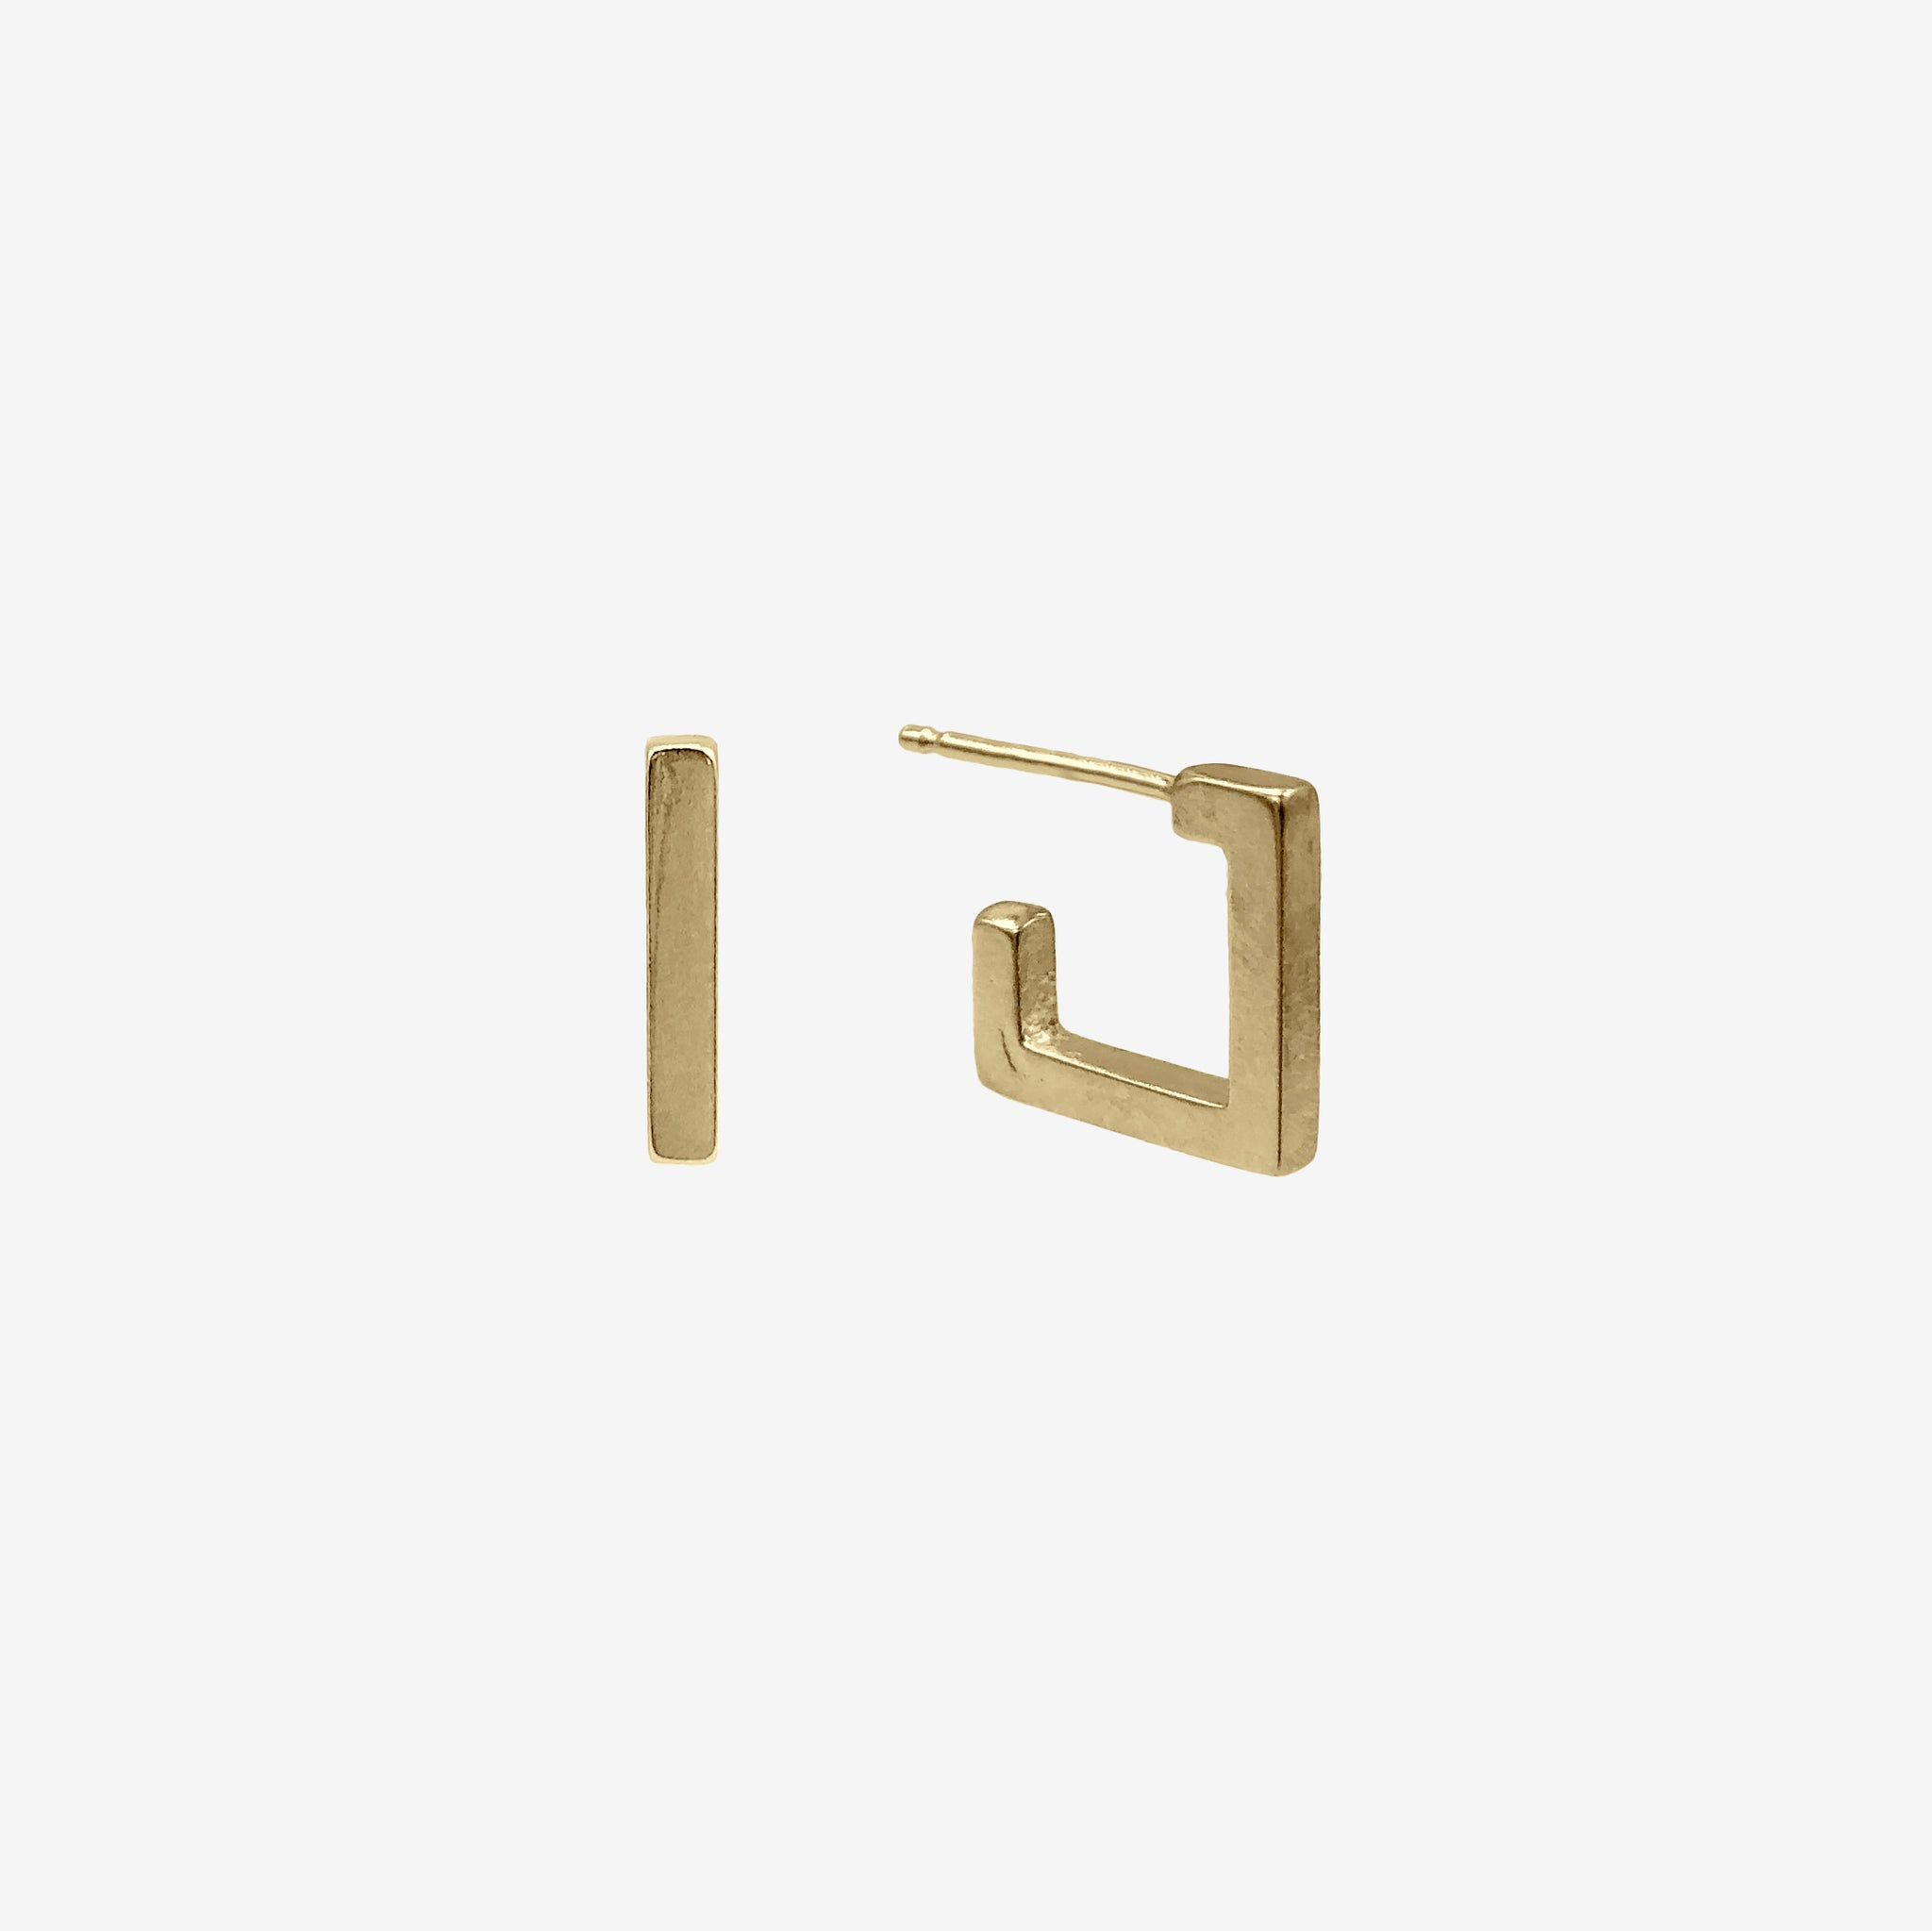 14k Gold Vermeil Square Hugger Earring crafted by women transitioning out of homelessness using 100% recycled metals